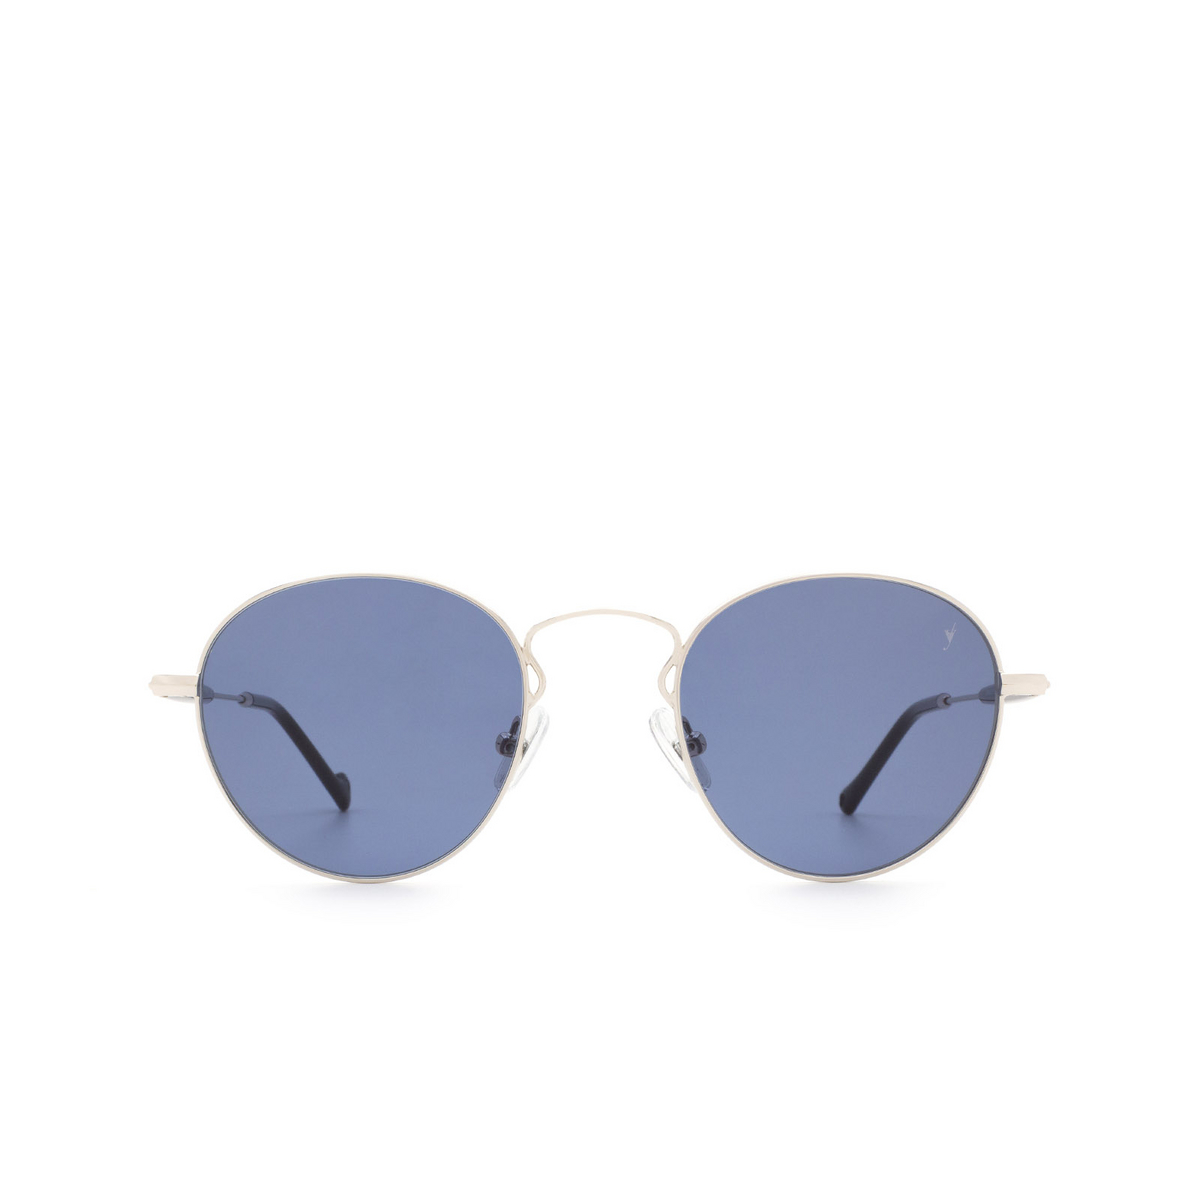 Eyepetizer® Round Sunglasses: Orangerie color Silver C.1-A-39 - front view.